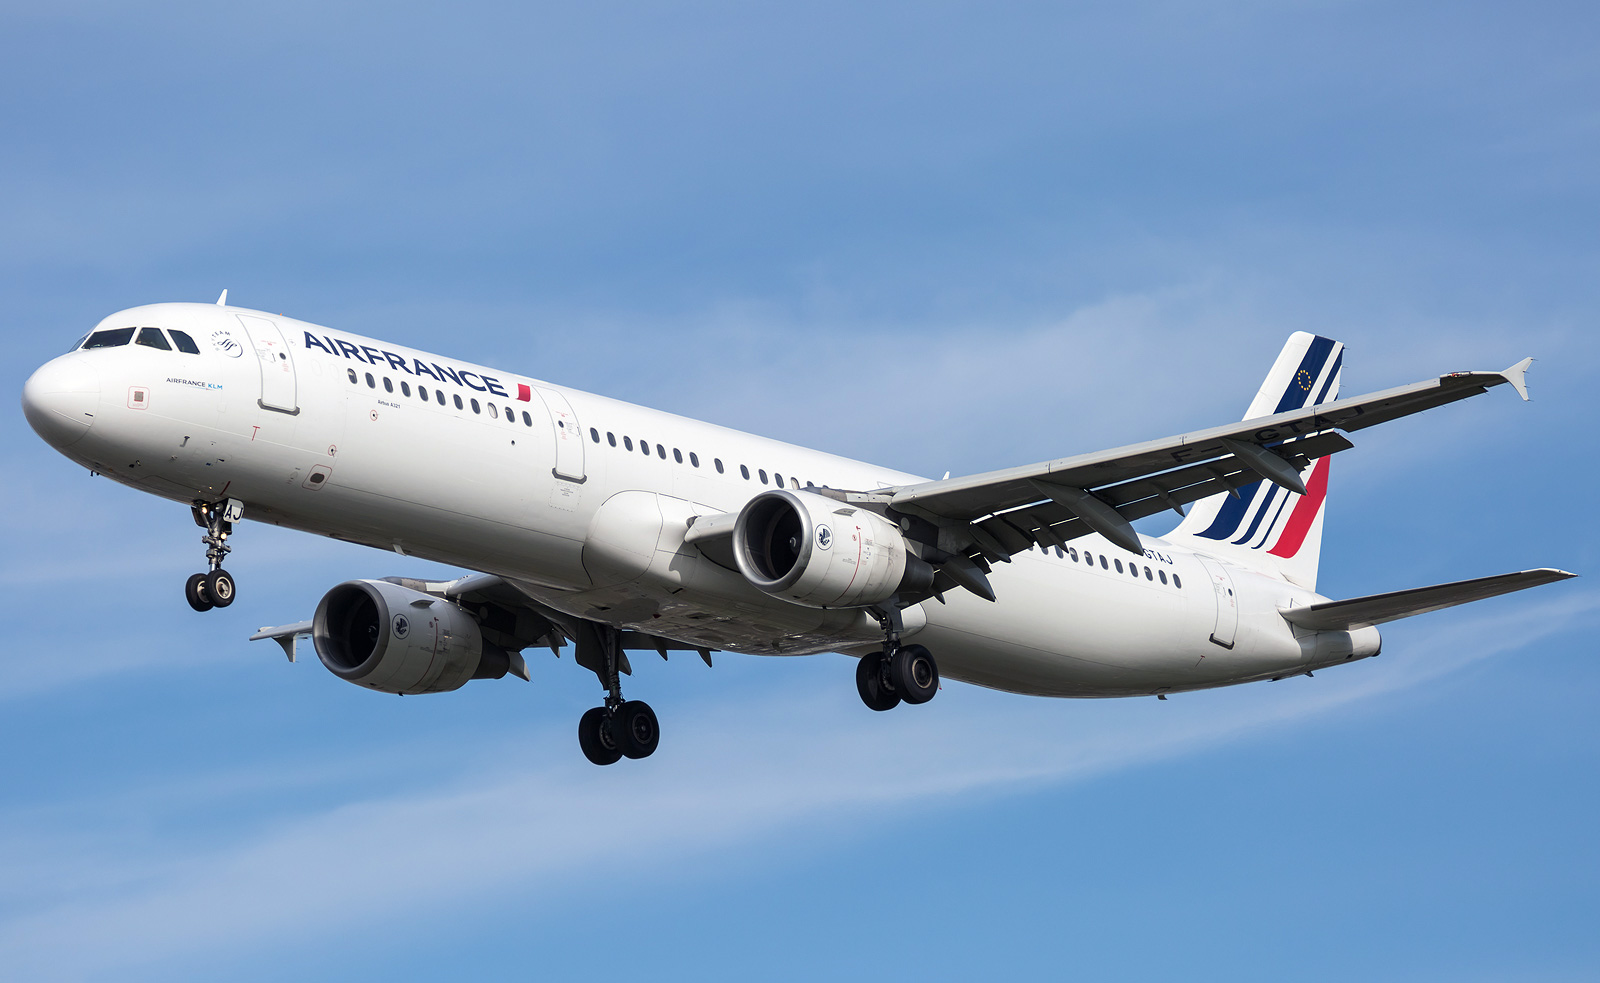 Airbus A321 200 Air France Photos And Description Of The